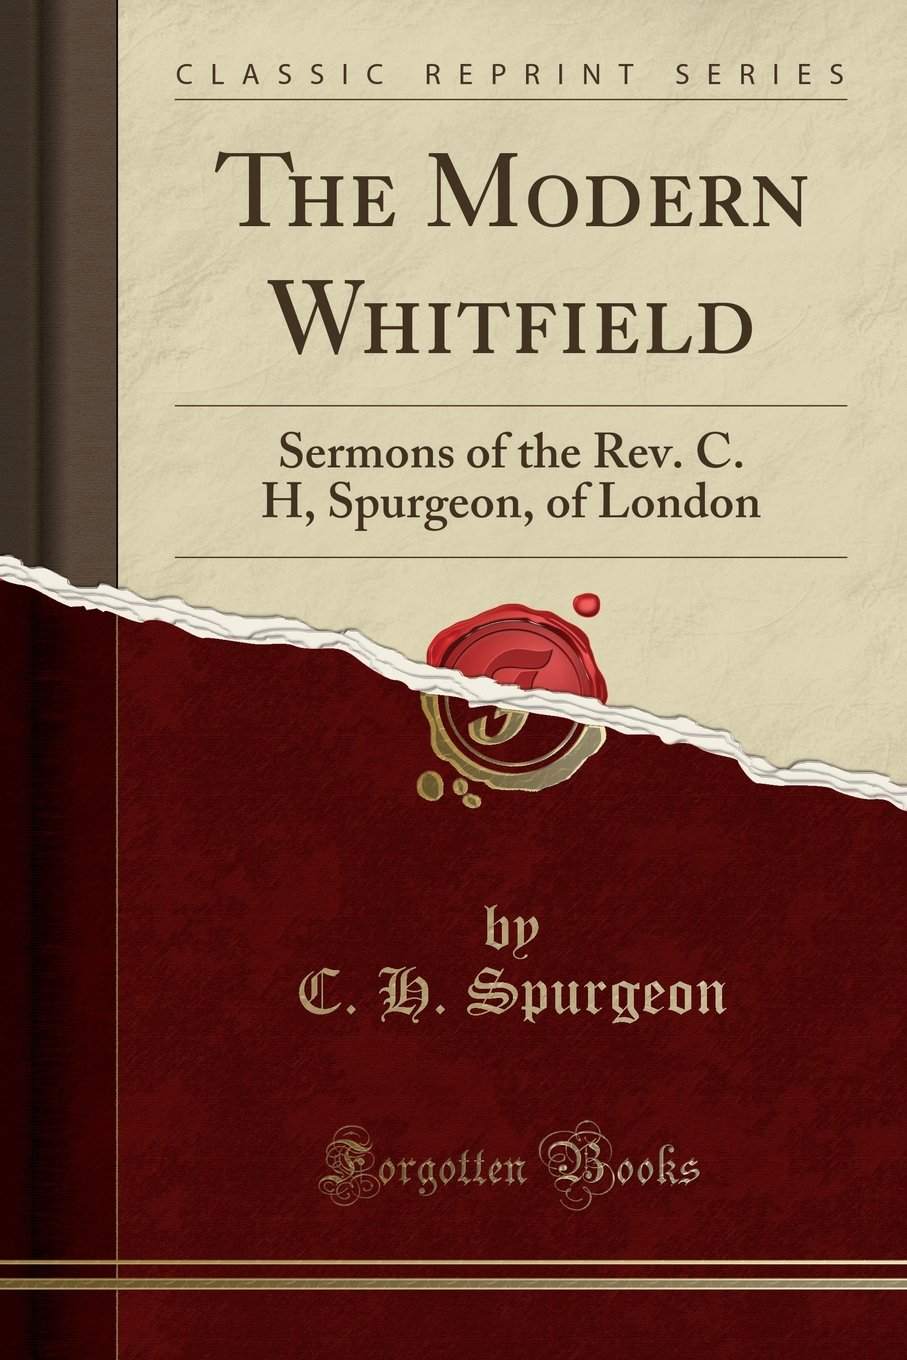 The Modern Whitfield: Sermons of the Rev. C. H, Spurgeon, of London (Classic Reprint) pdf